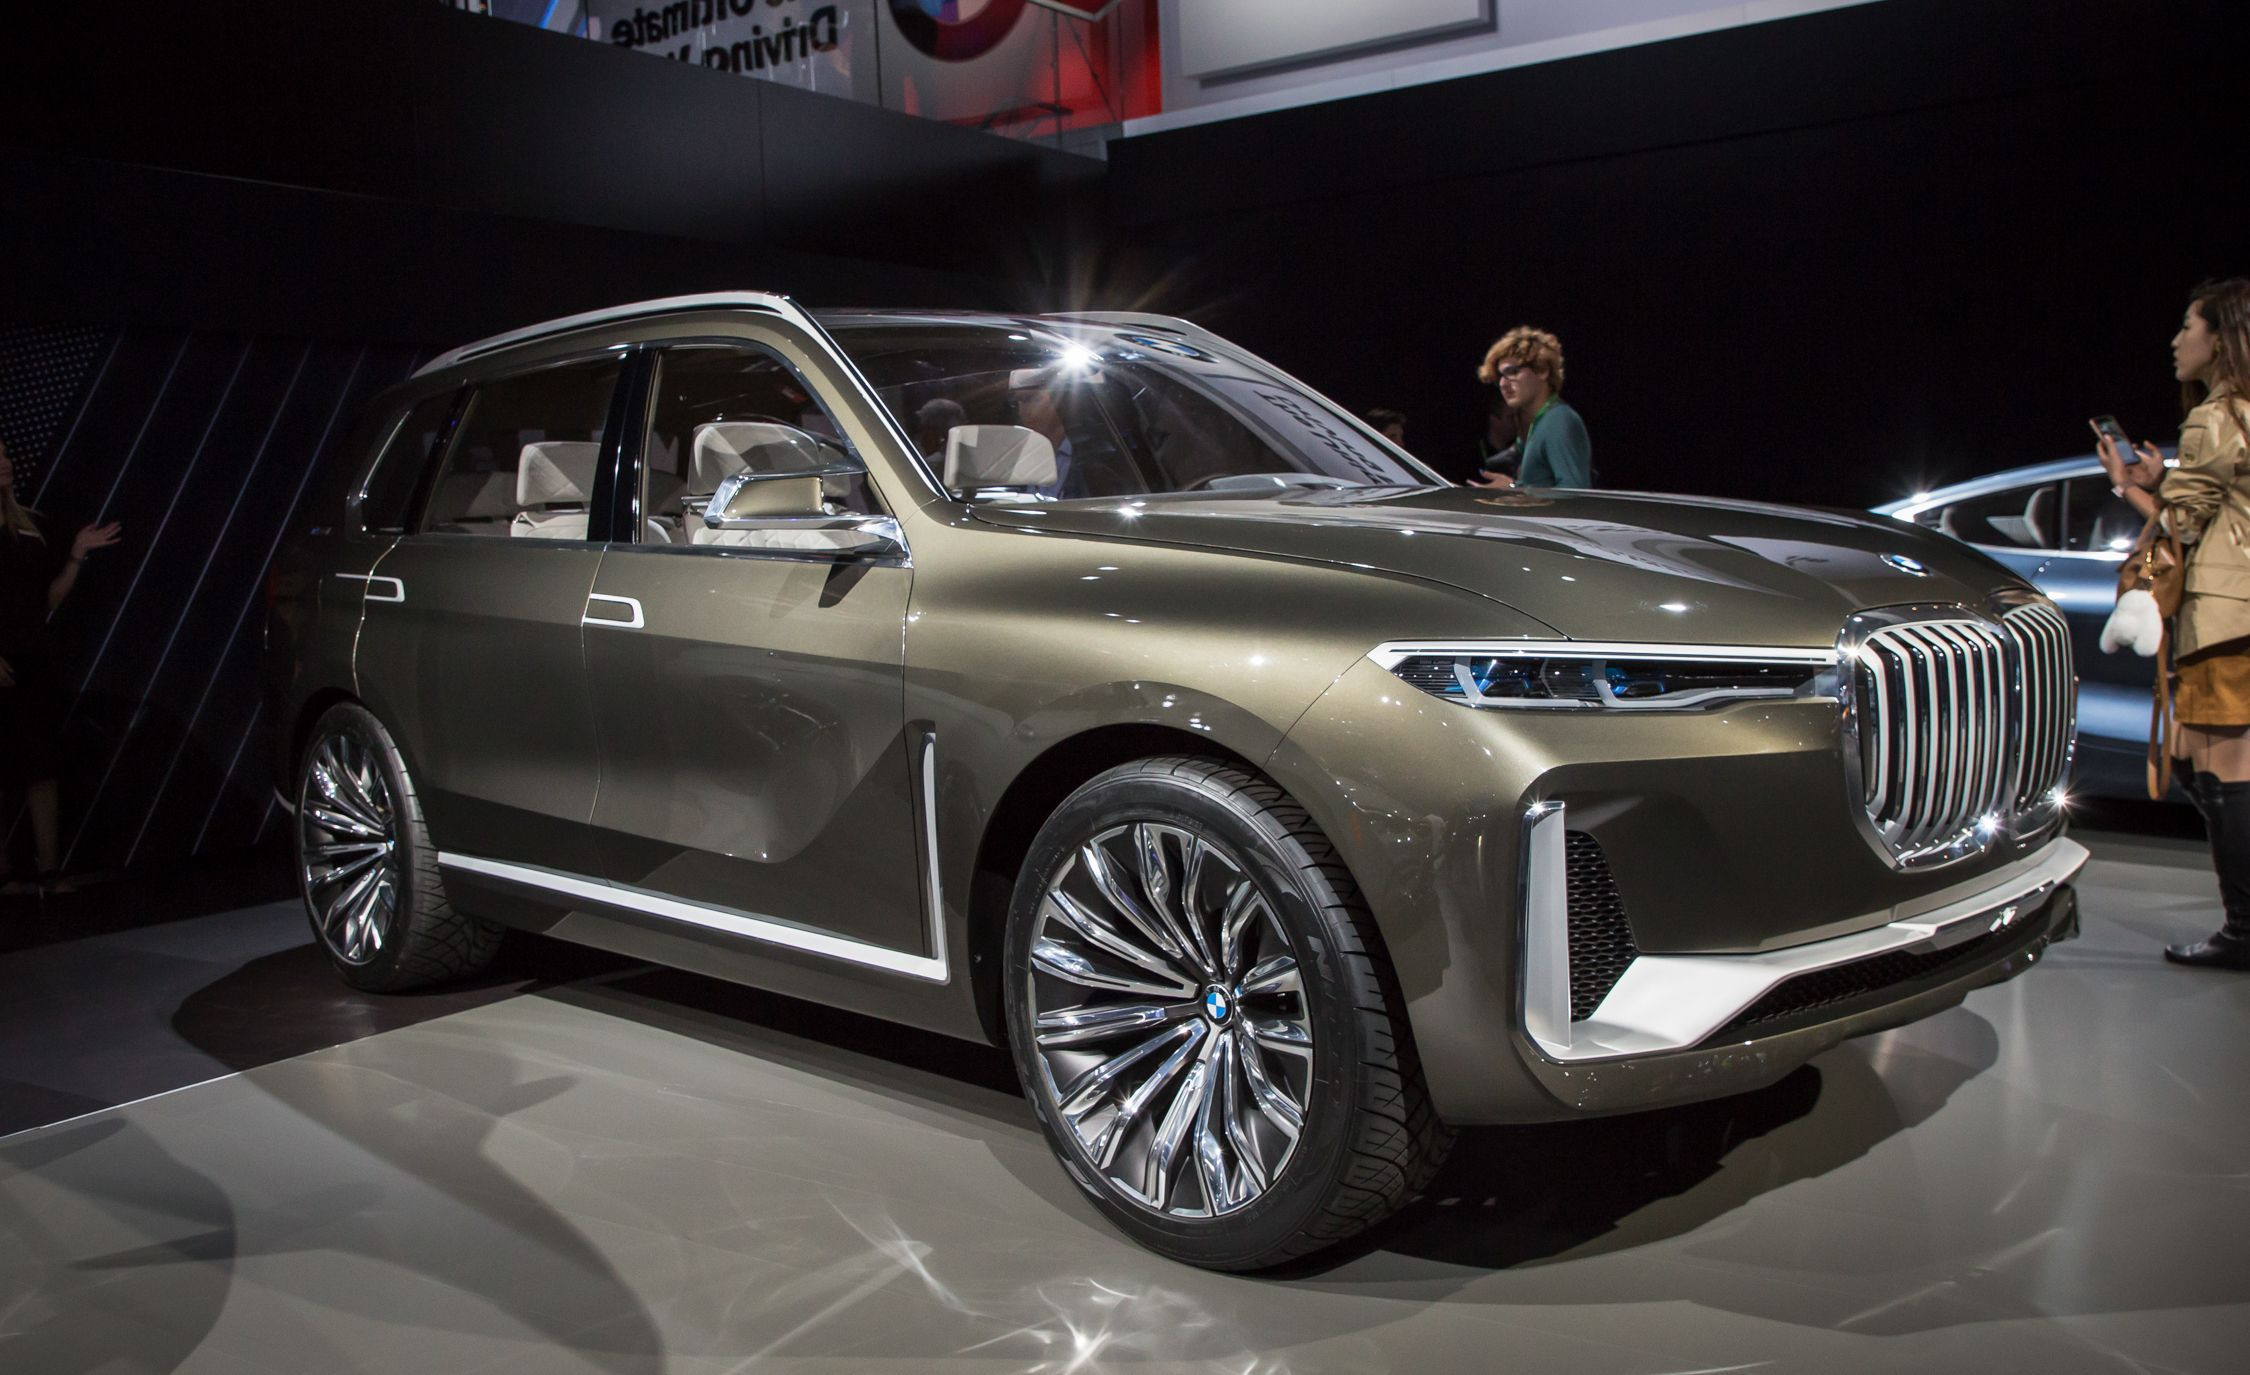 Used Gmc Trucks For Sale >> BMW Concept X7 iPerformance Pictures | Photo Gallery | Car ...